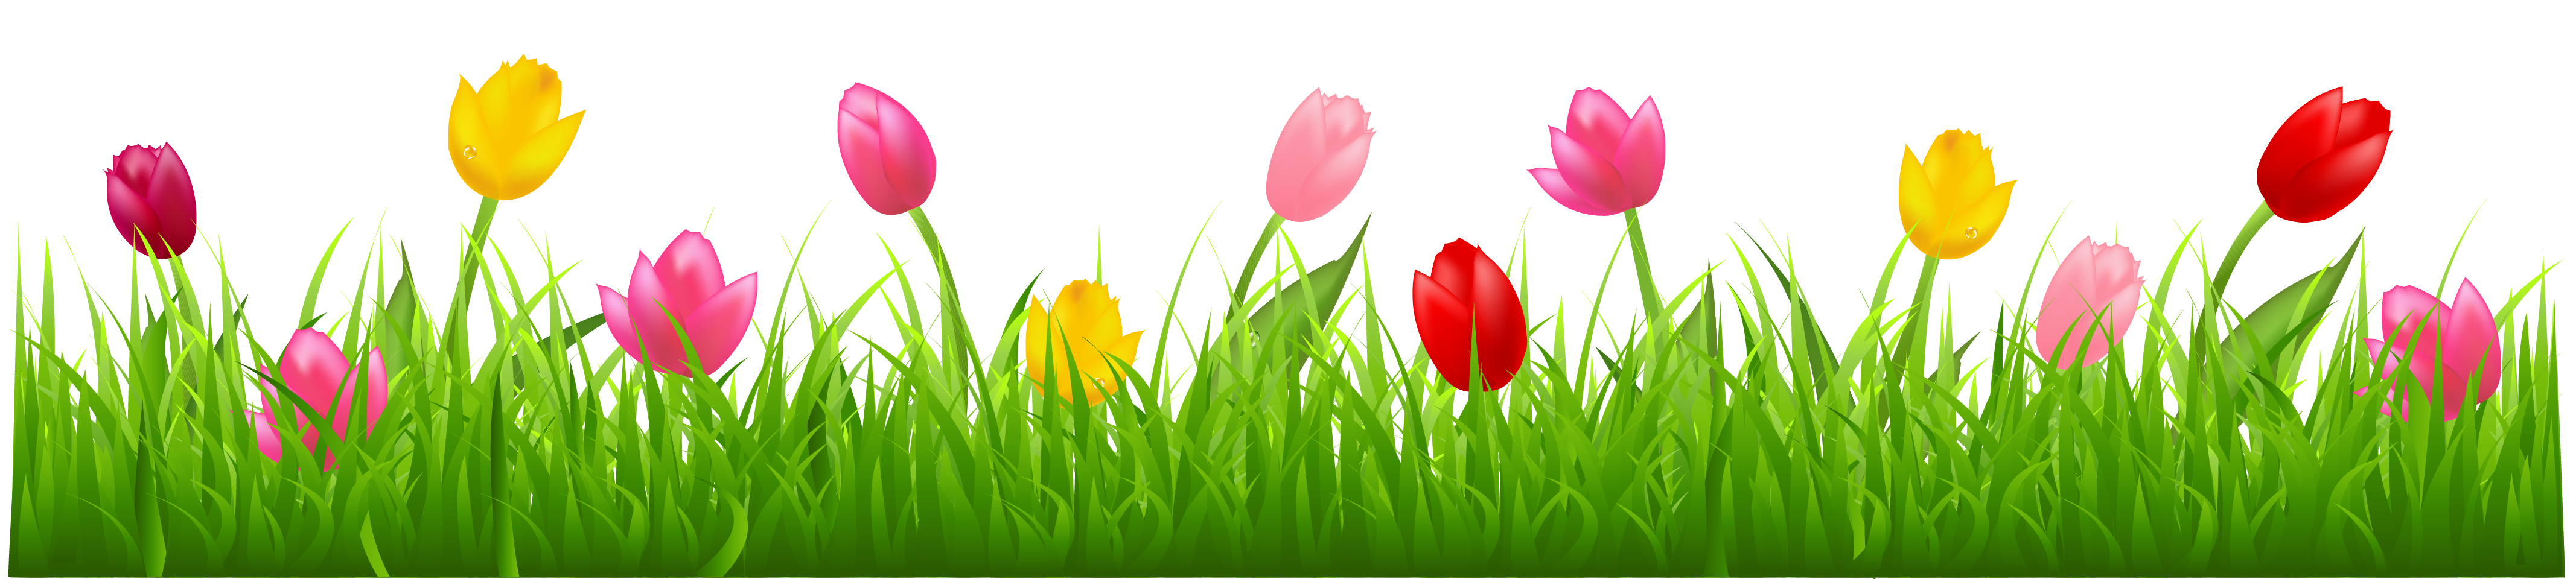 Grass with Colorful Tulips PNG Clipart | Spring Borders | Pinterest | Grasses and Tulip